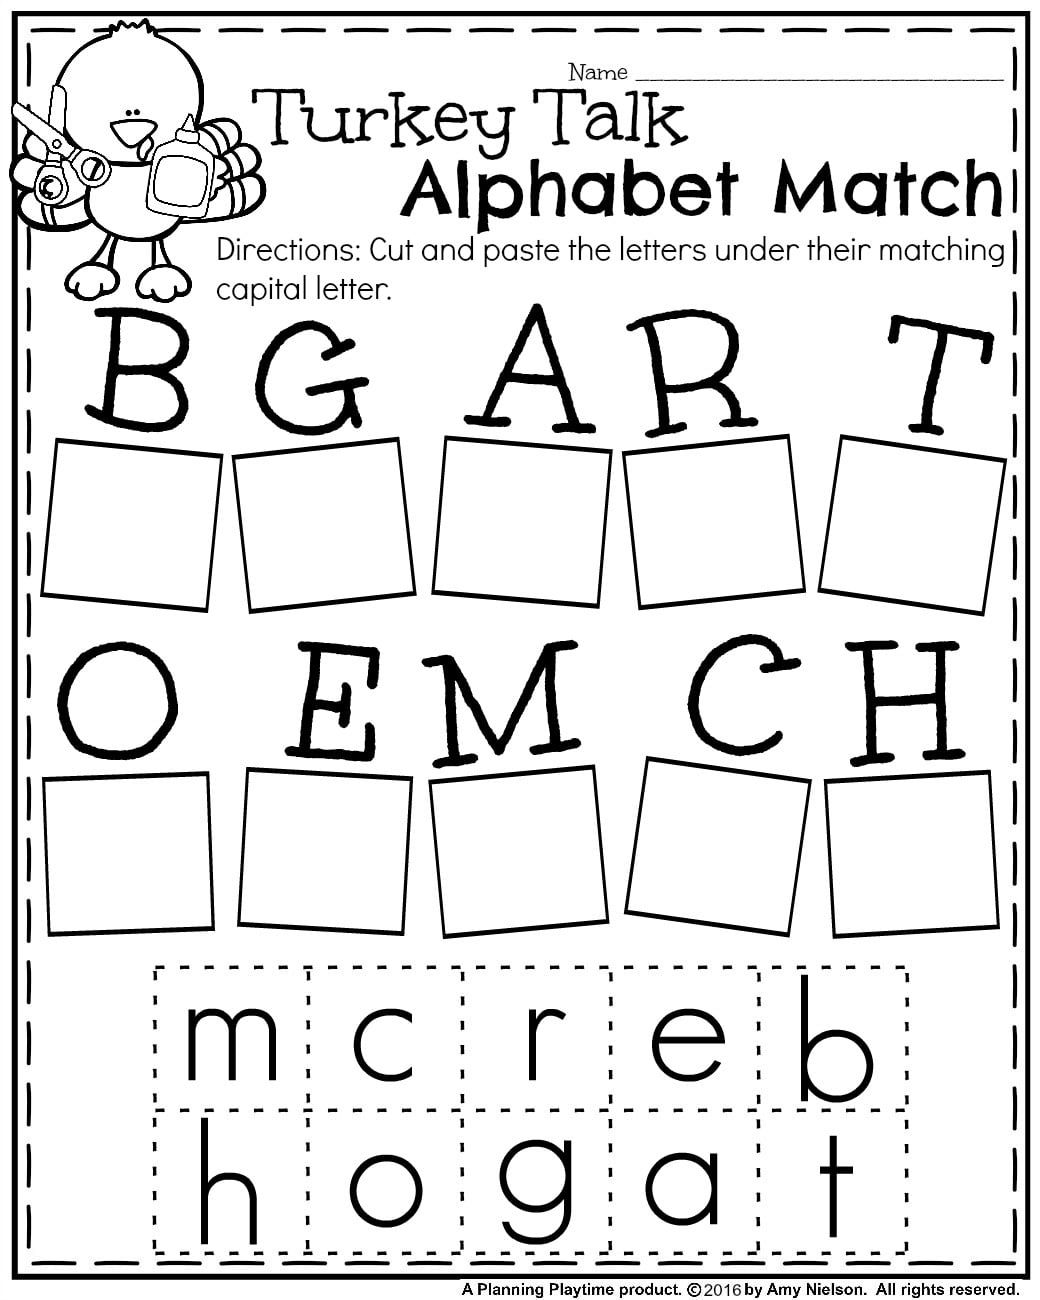 worksheet Fall Worksheets For Preschool fall kindergarten worksheets for november free worksheet turkey alphabet match